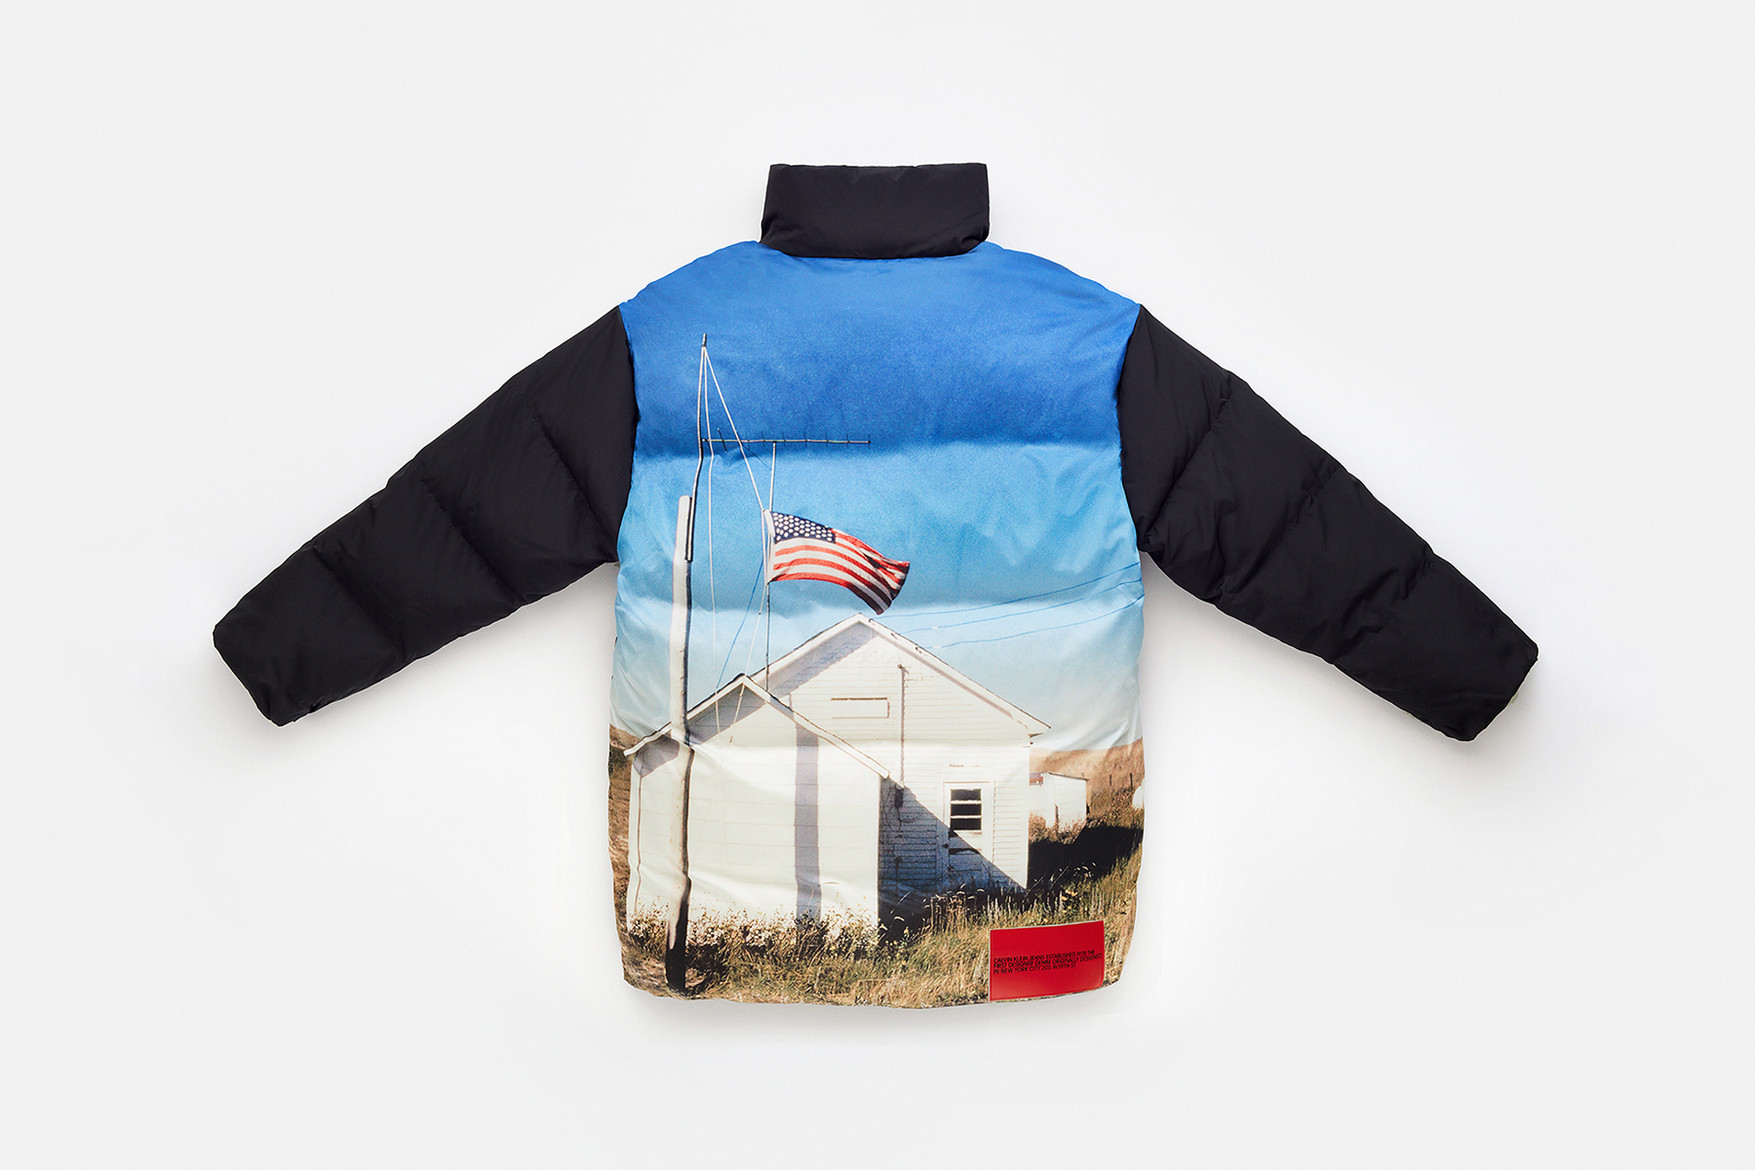 https_%2F%2Fhypebeast.com%2Fimage%2F2018%2F07%2Fcalvin-klein-jeans-Est-1978-delivery-1-15.jpg